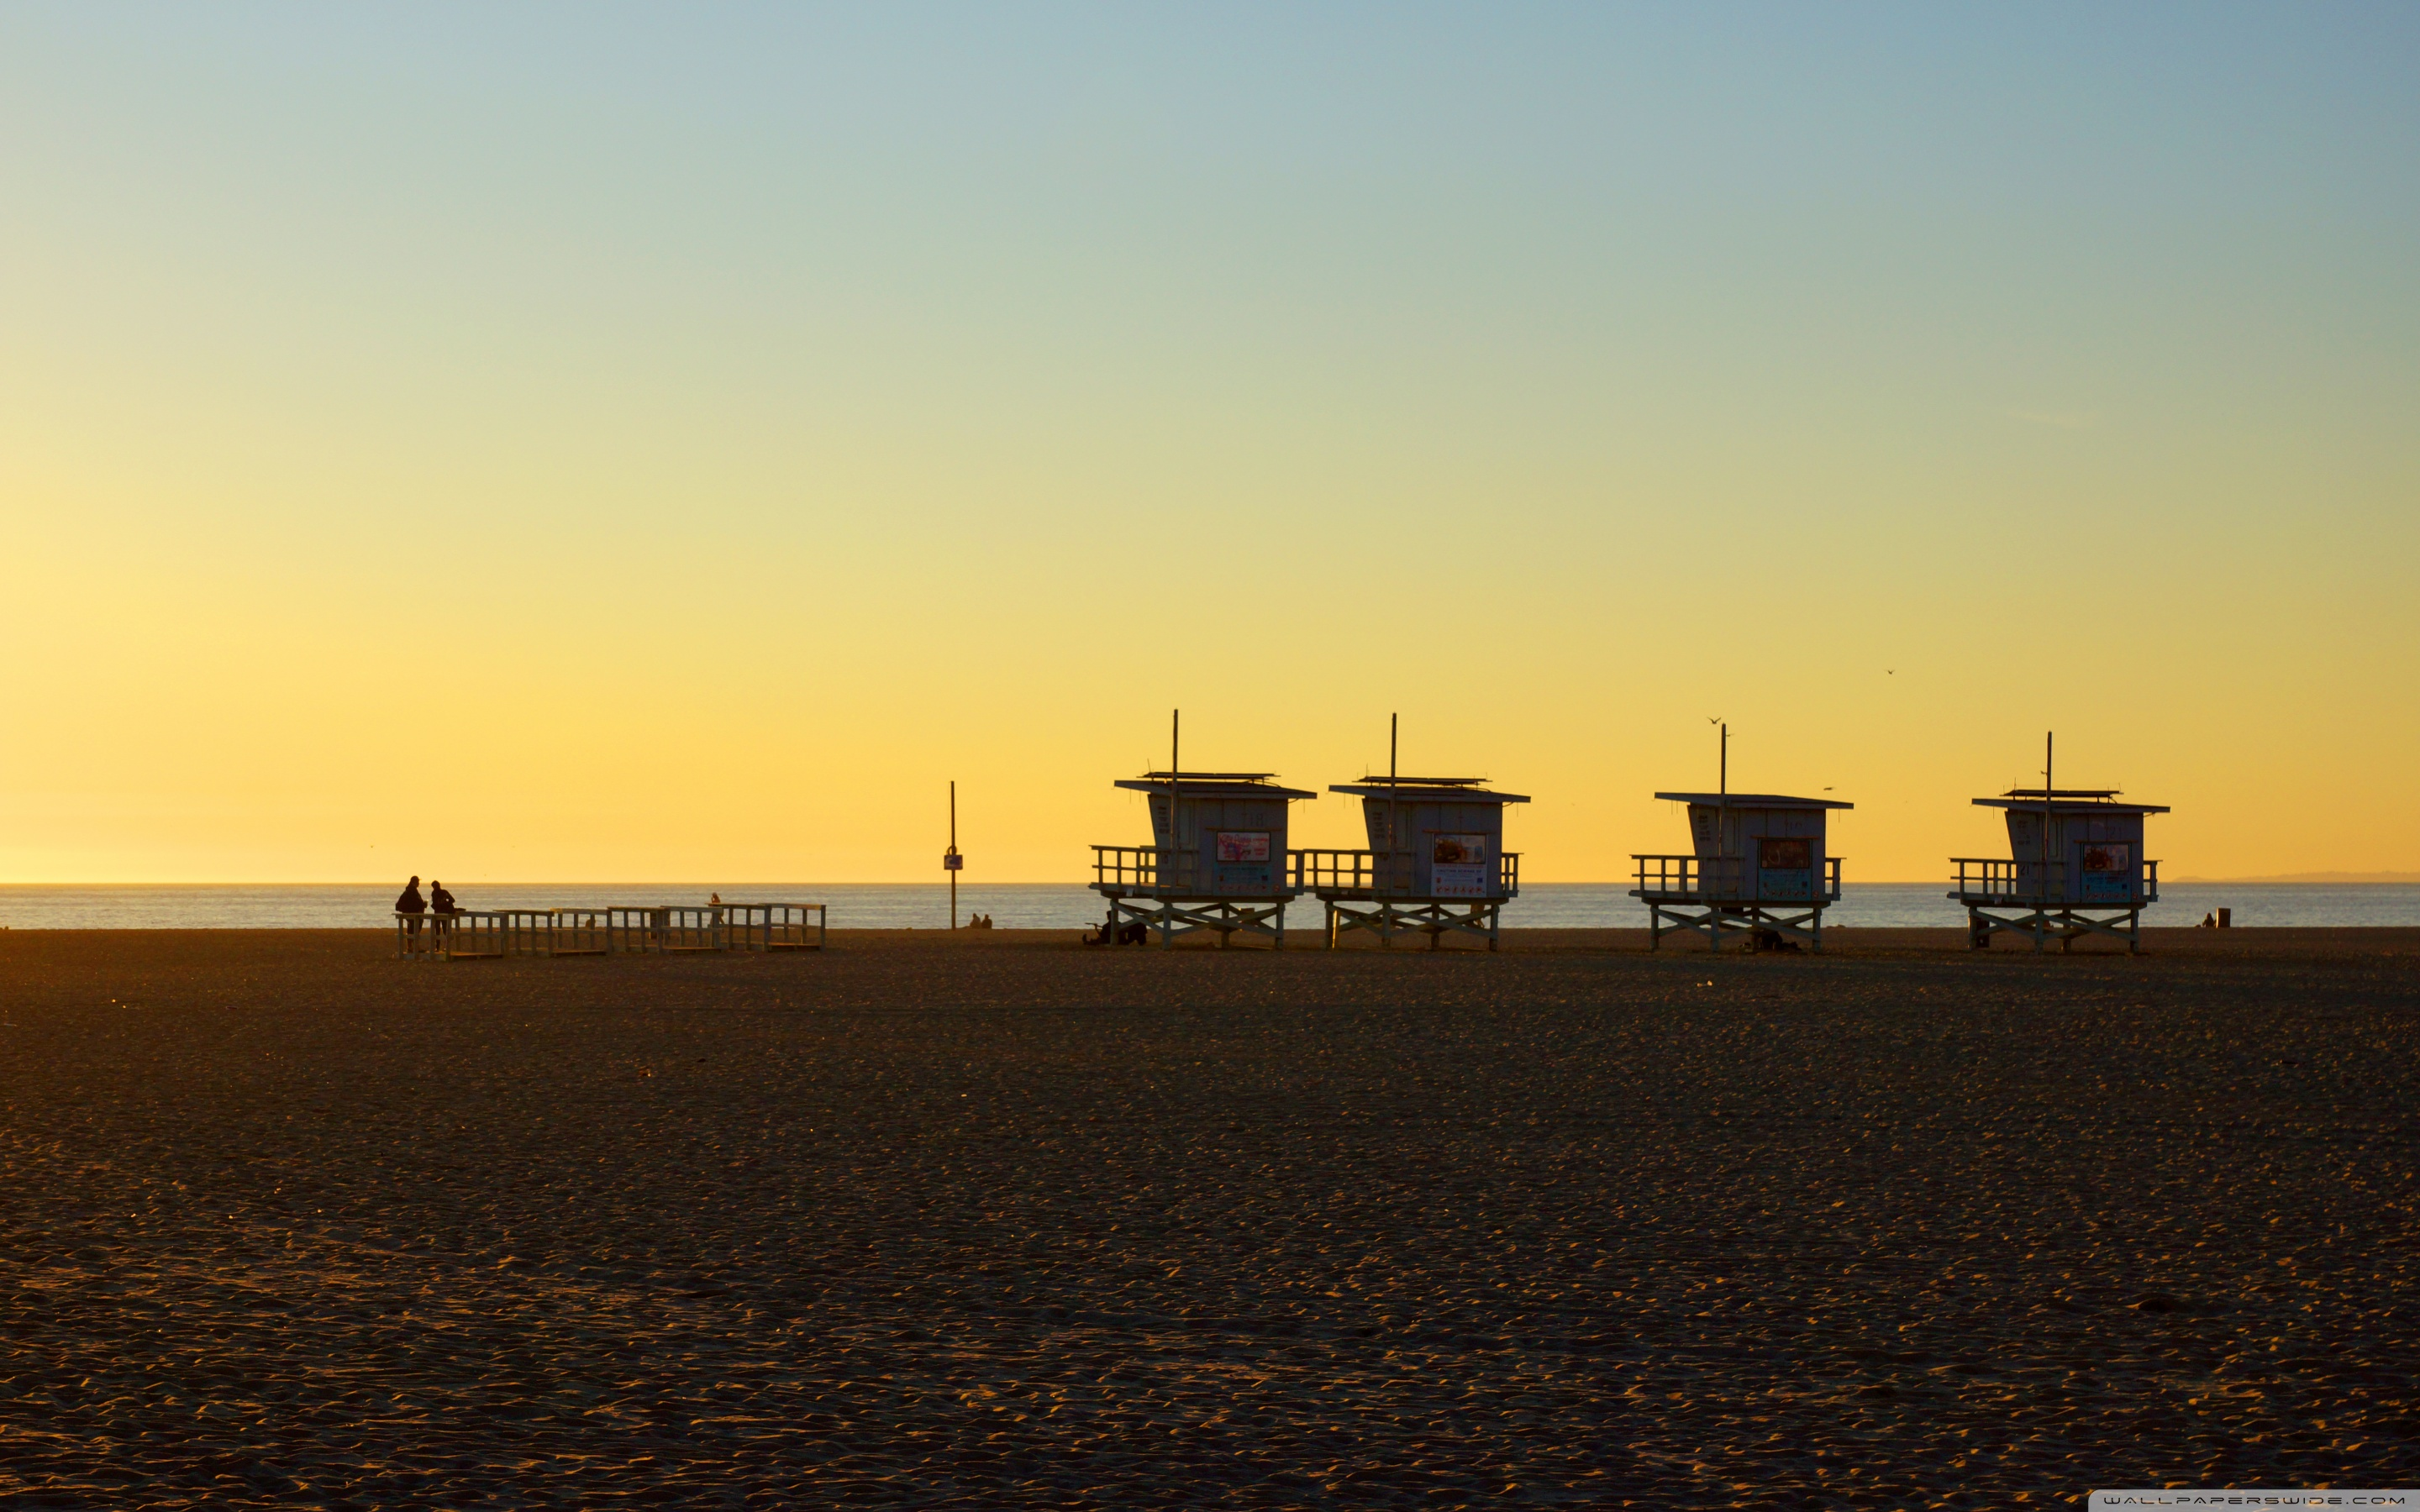 Los Angeles Venice Beach 4K HD Desktop Wallpaper for Dual 2880x1800